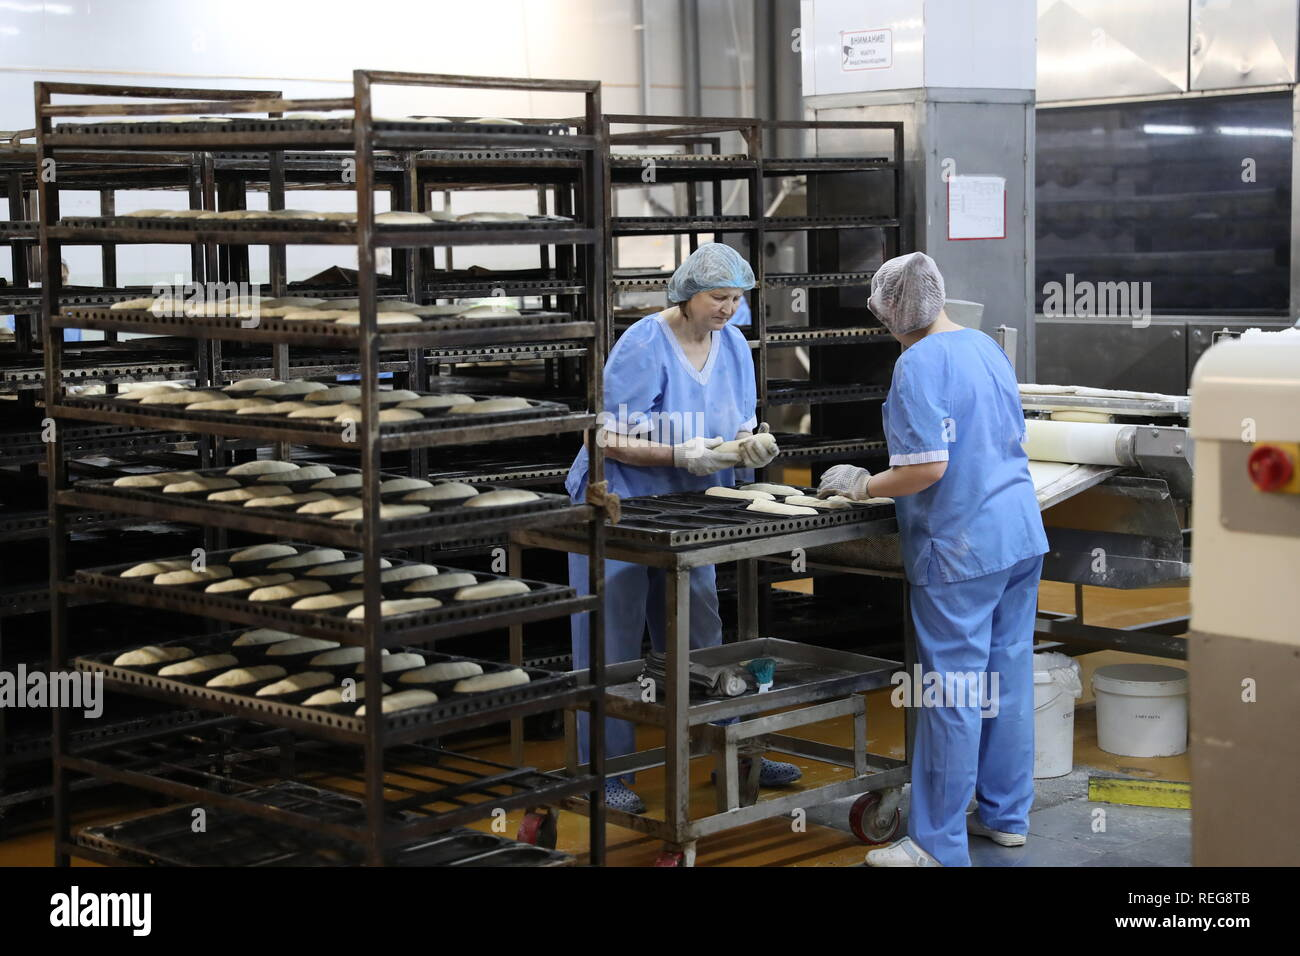 Yekaterinburg, Russia. 22nd Jan, 2019. YEKATERINBURG, RUSSIA - JANUARY 22, 2019: A bread section of the Smak Sverdlovsk Bread Factory. Donat Sorokin/TASS Credit: ITAR-TASS News Agency/Alamy Live News - Stock Image